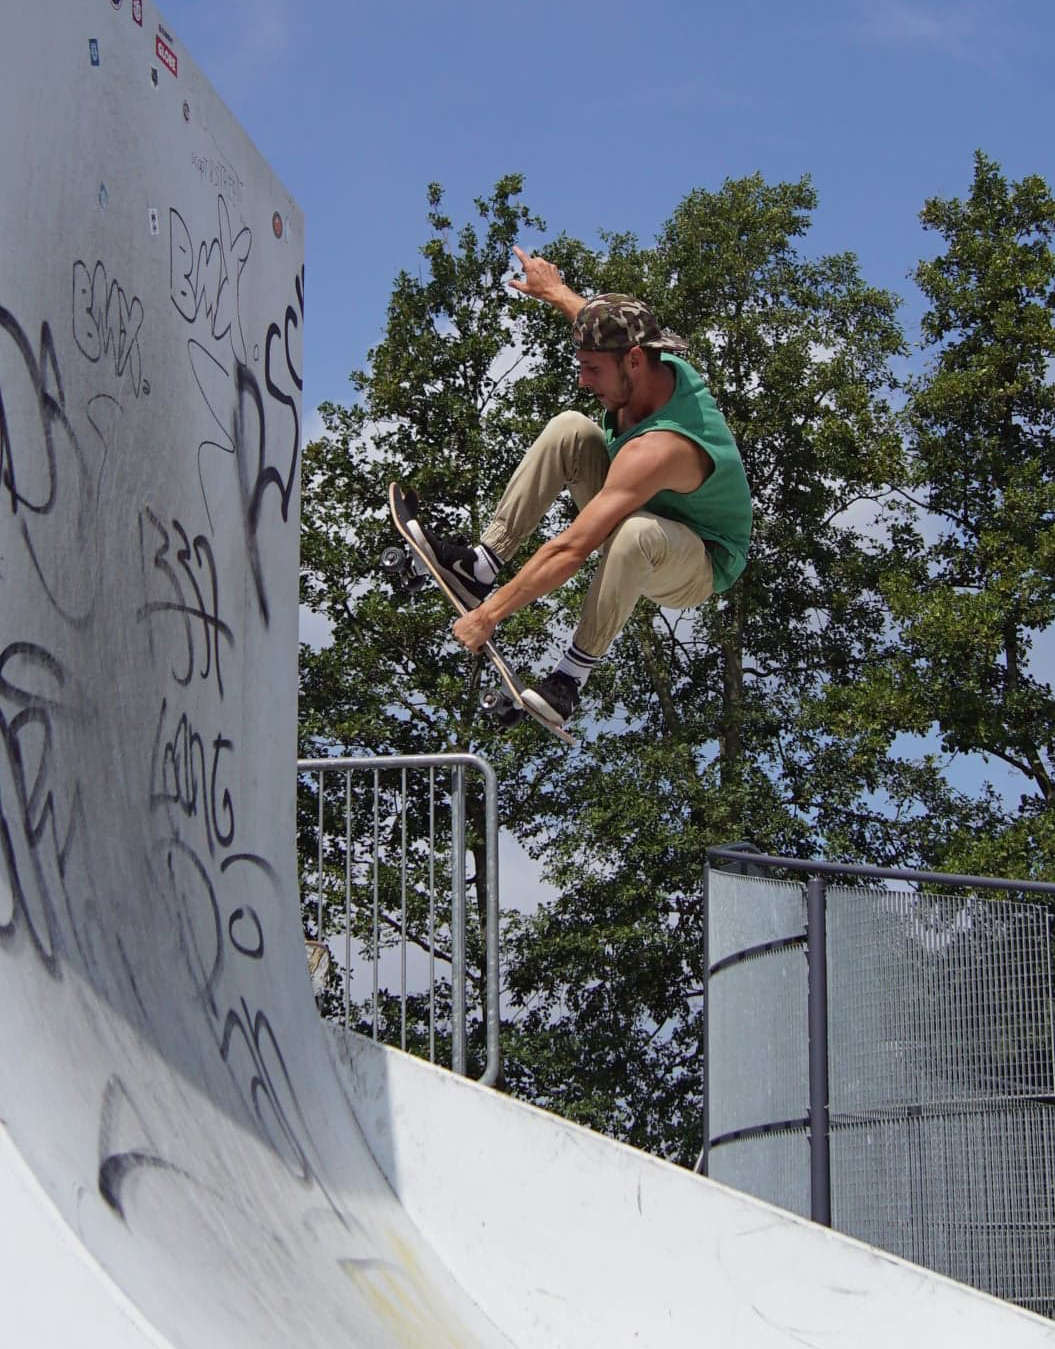 Indy by Eres Otte at Skatepark Lot. Photo: Stoked